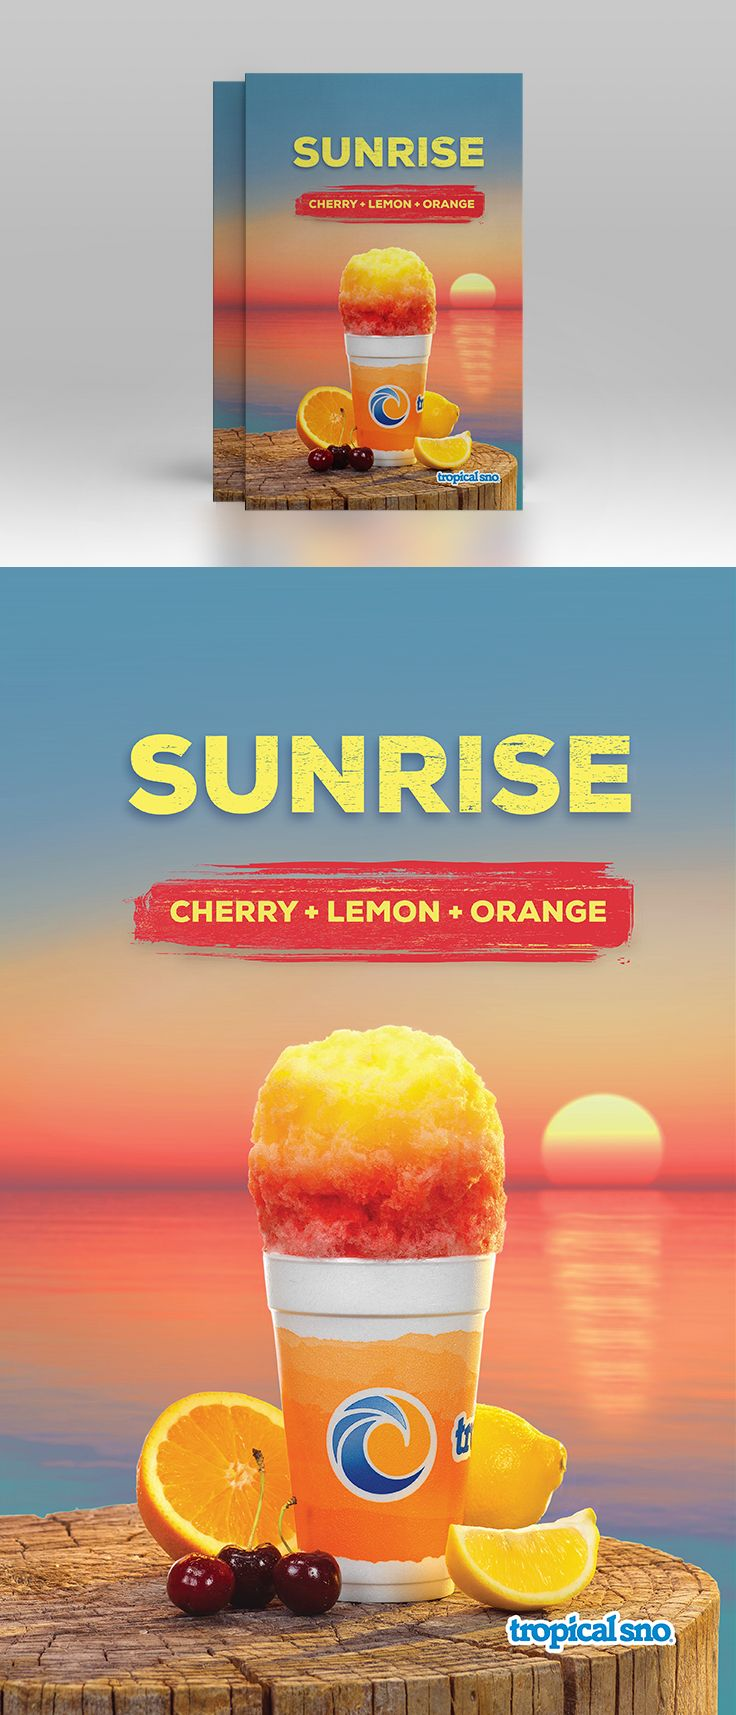 Sunrise poster for Tropical Sno #posterdesign #branding #advertising #marketing #tropicalsno #shavedice #packagedesign #epicmarketing #poster